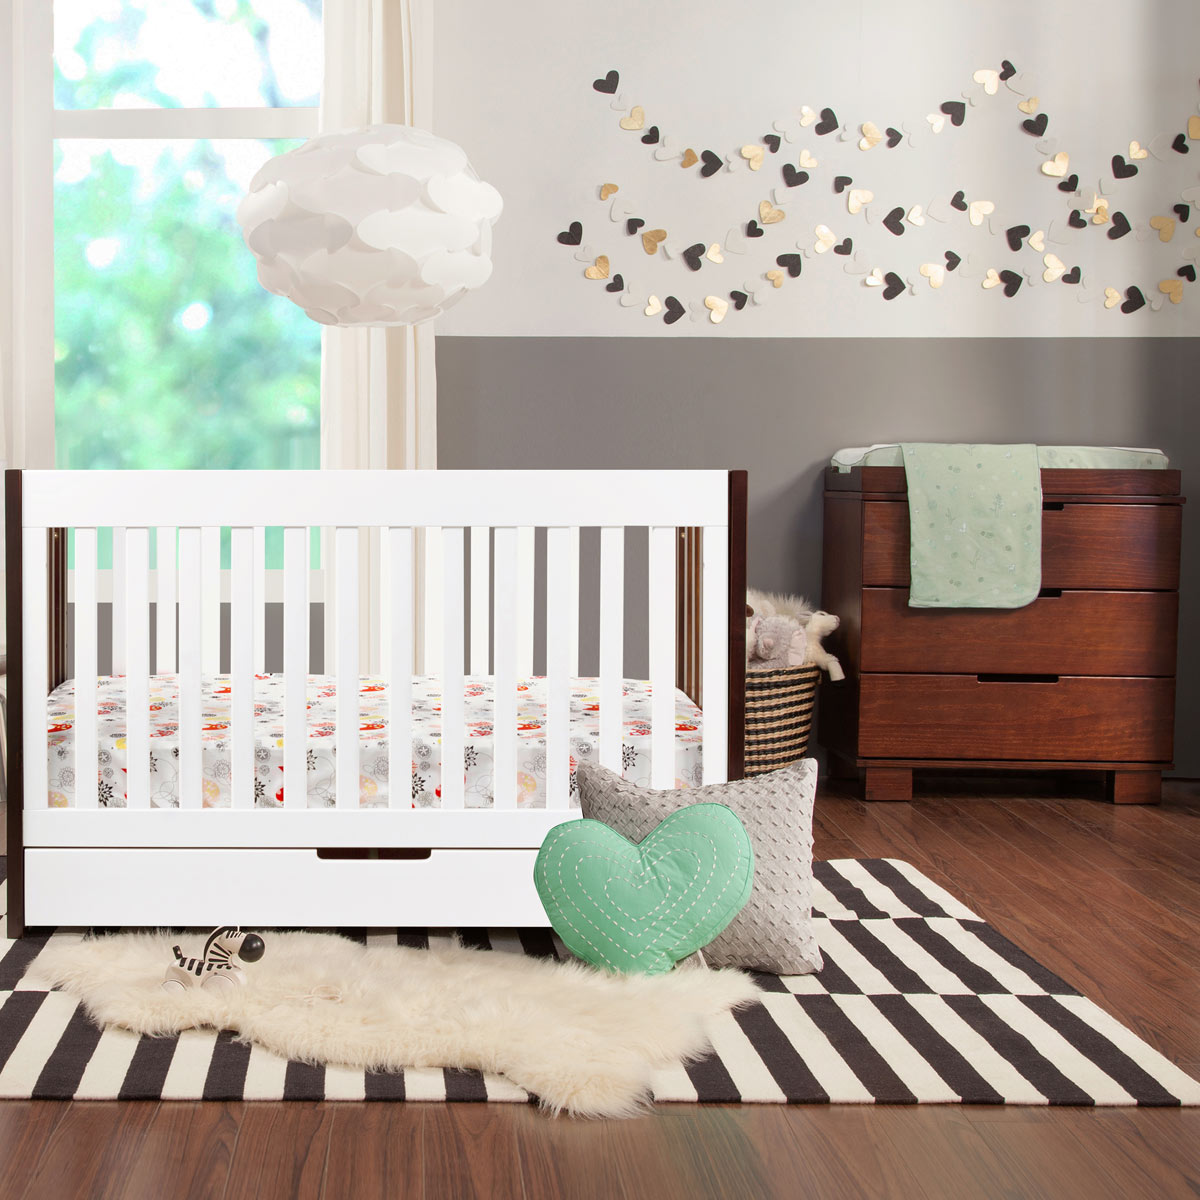 Modern Babyletto 2 Piece Nursery Set   Mercer Two Tone 3 In 1 Crib U0026 3  Drawer Espresso Dresser/Changer Set   FREE SHIPPING